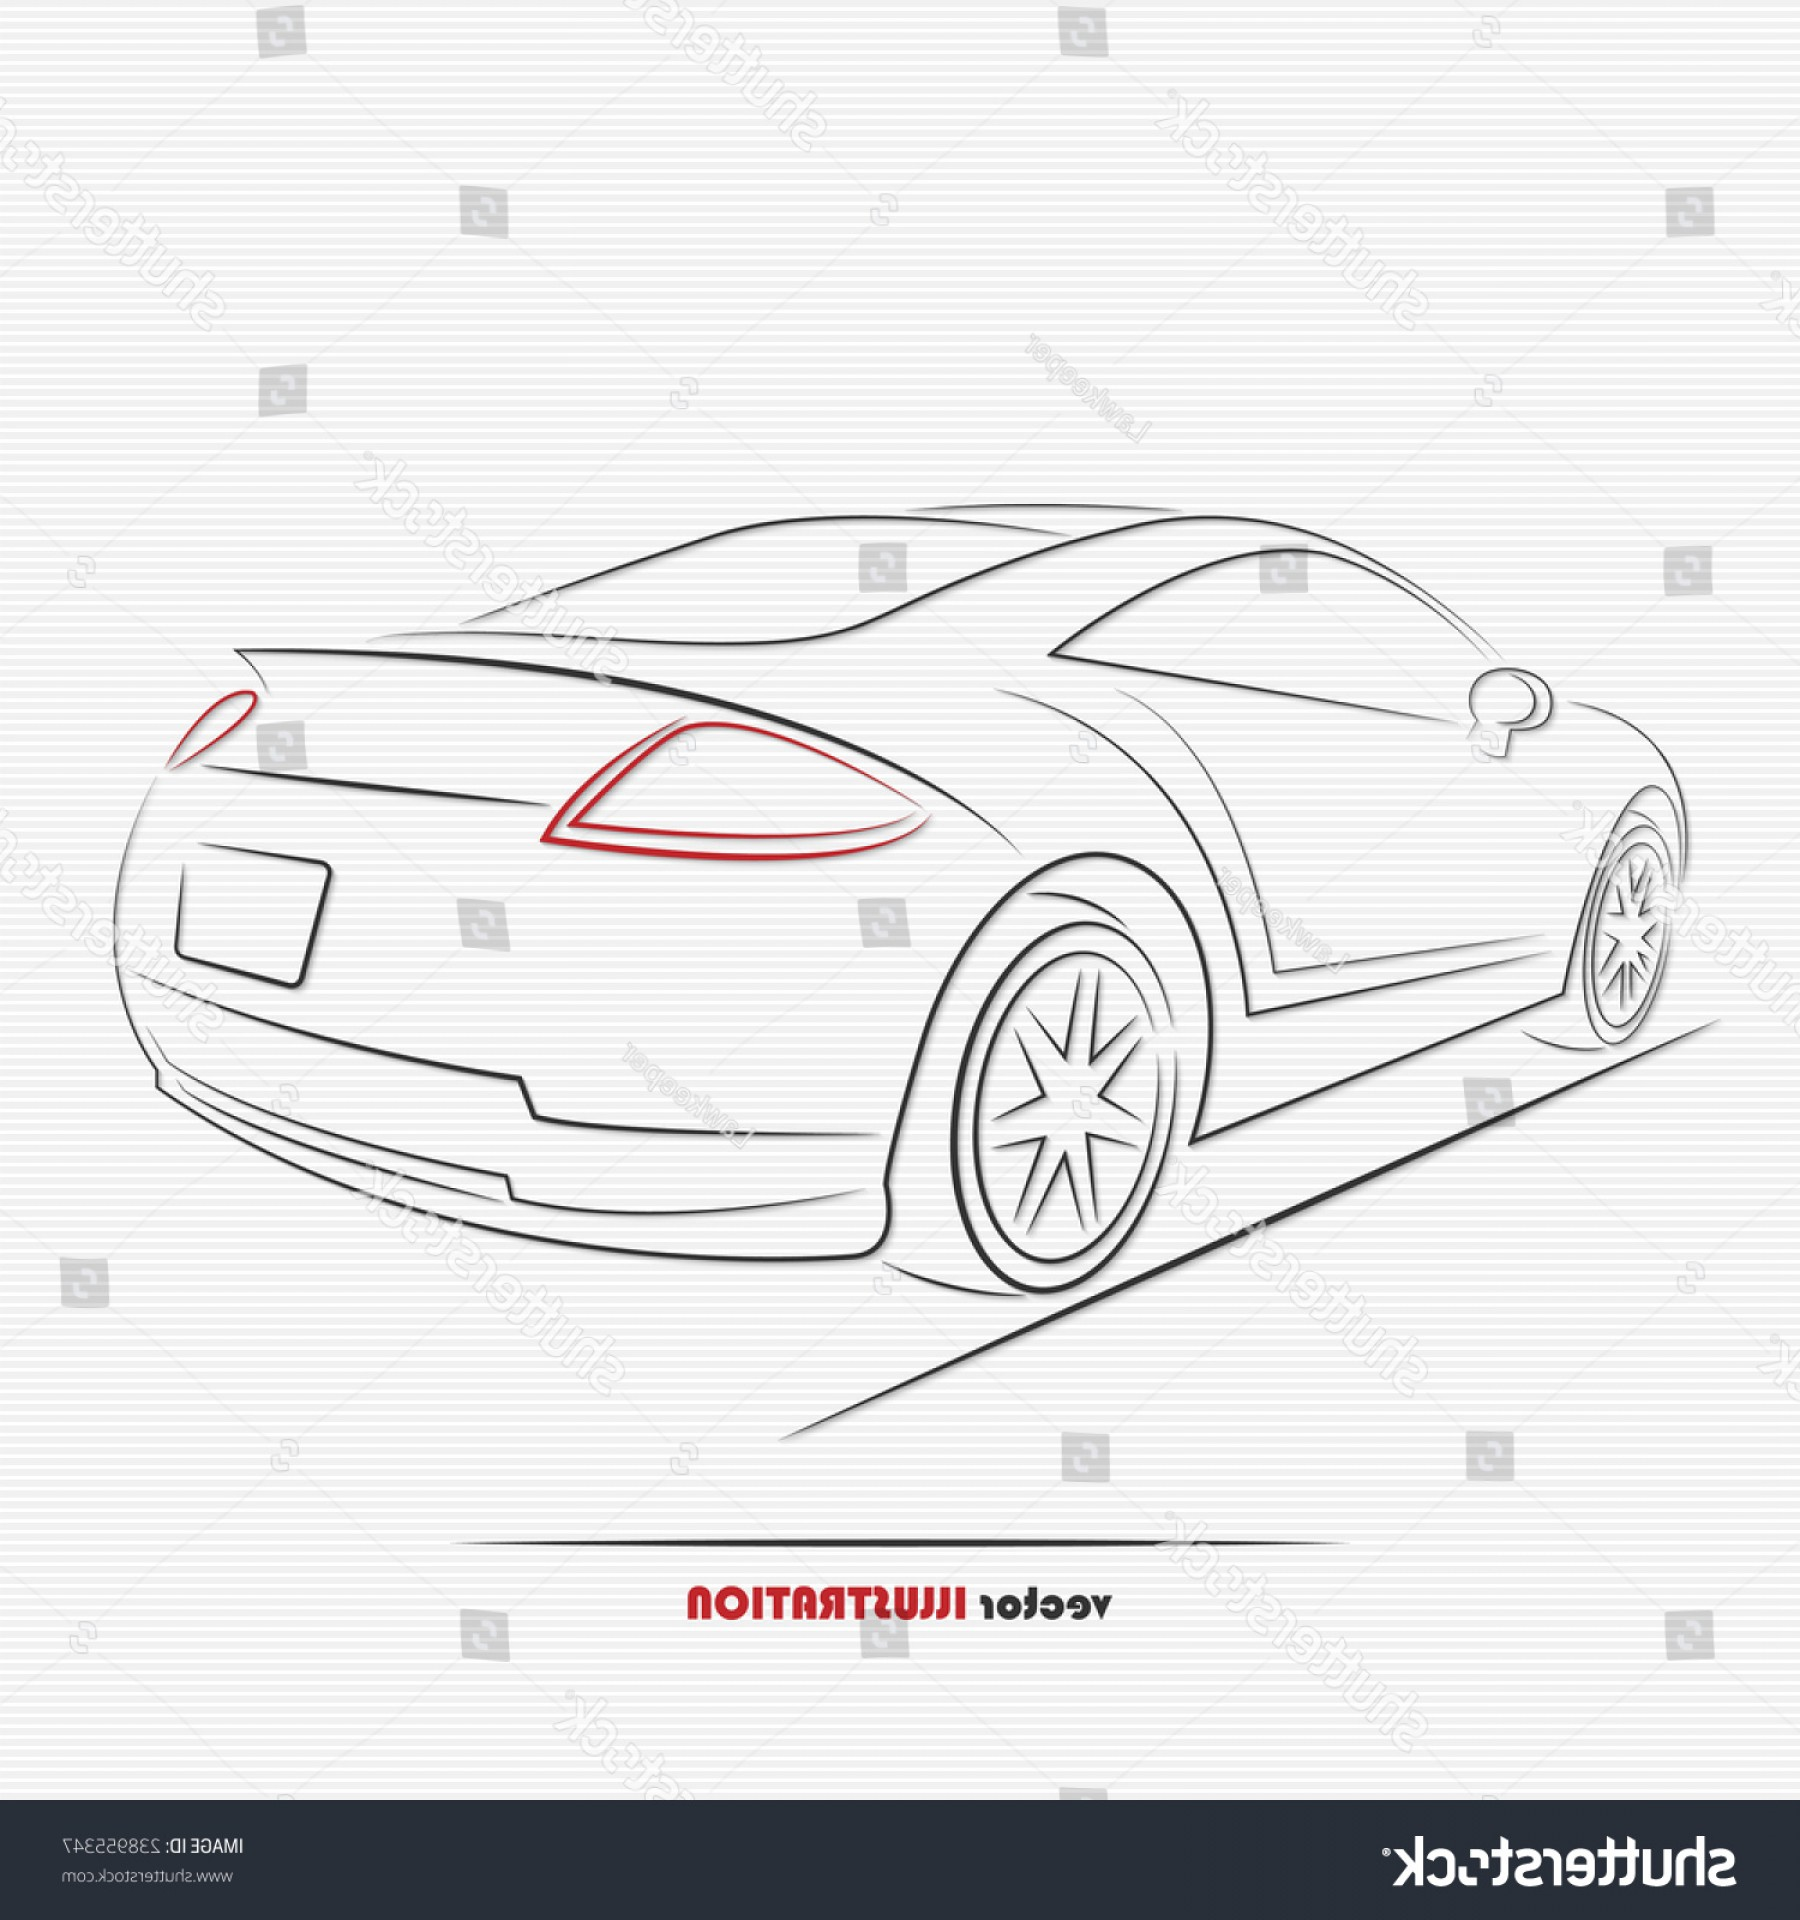 Mitsubishi Eclipse Vector: Silhouette Sport Car Your Design